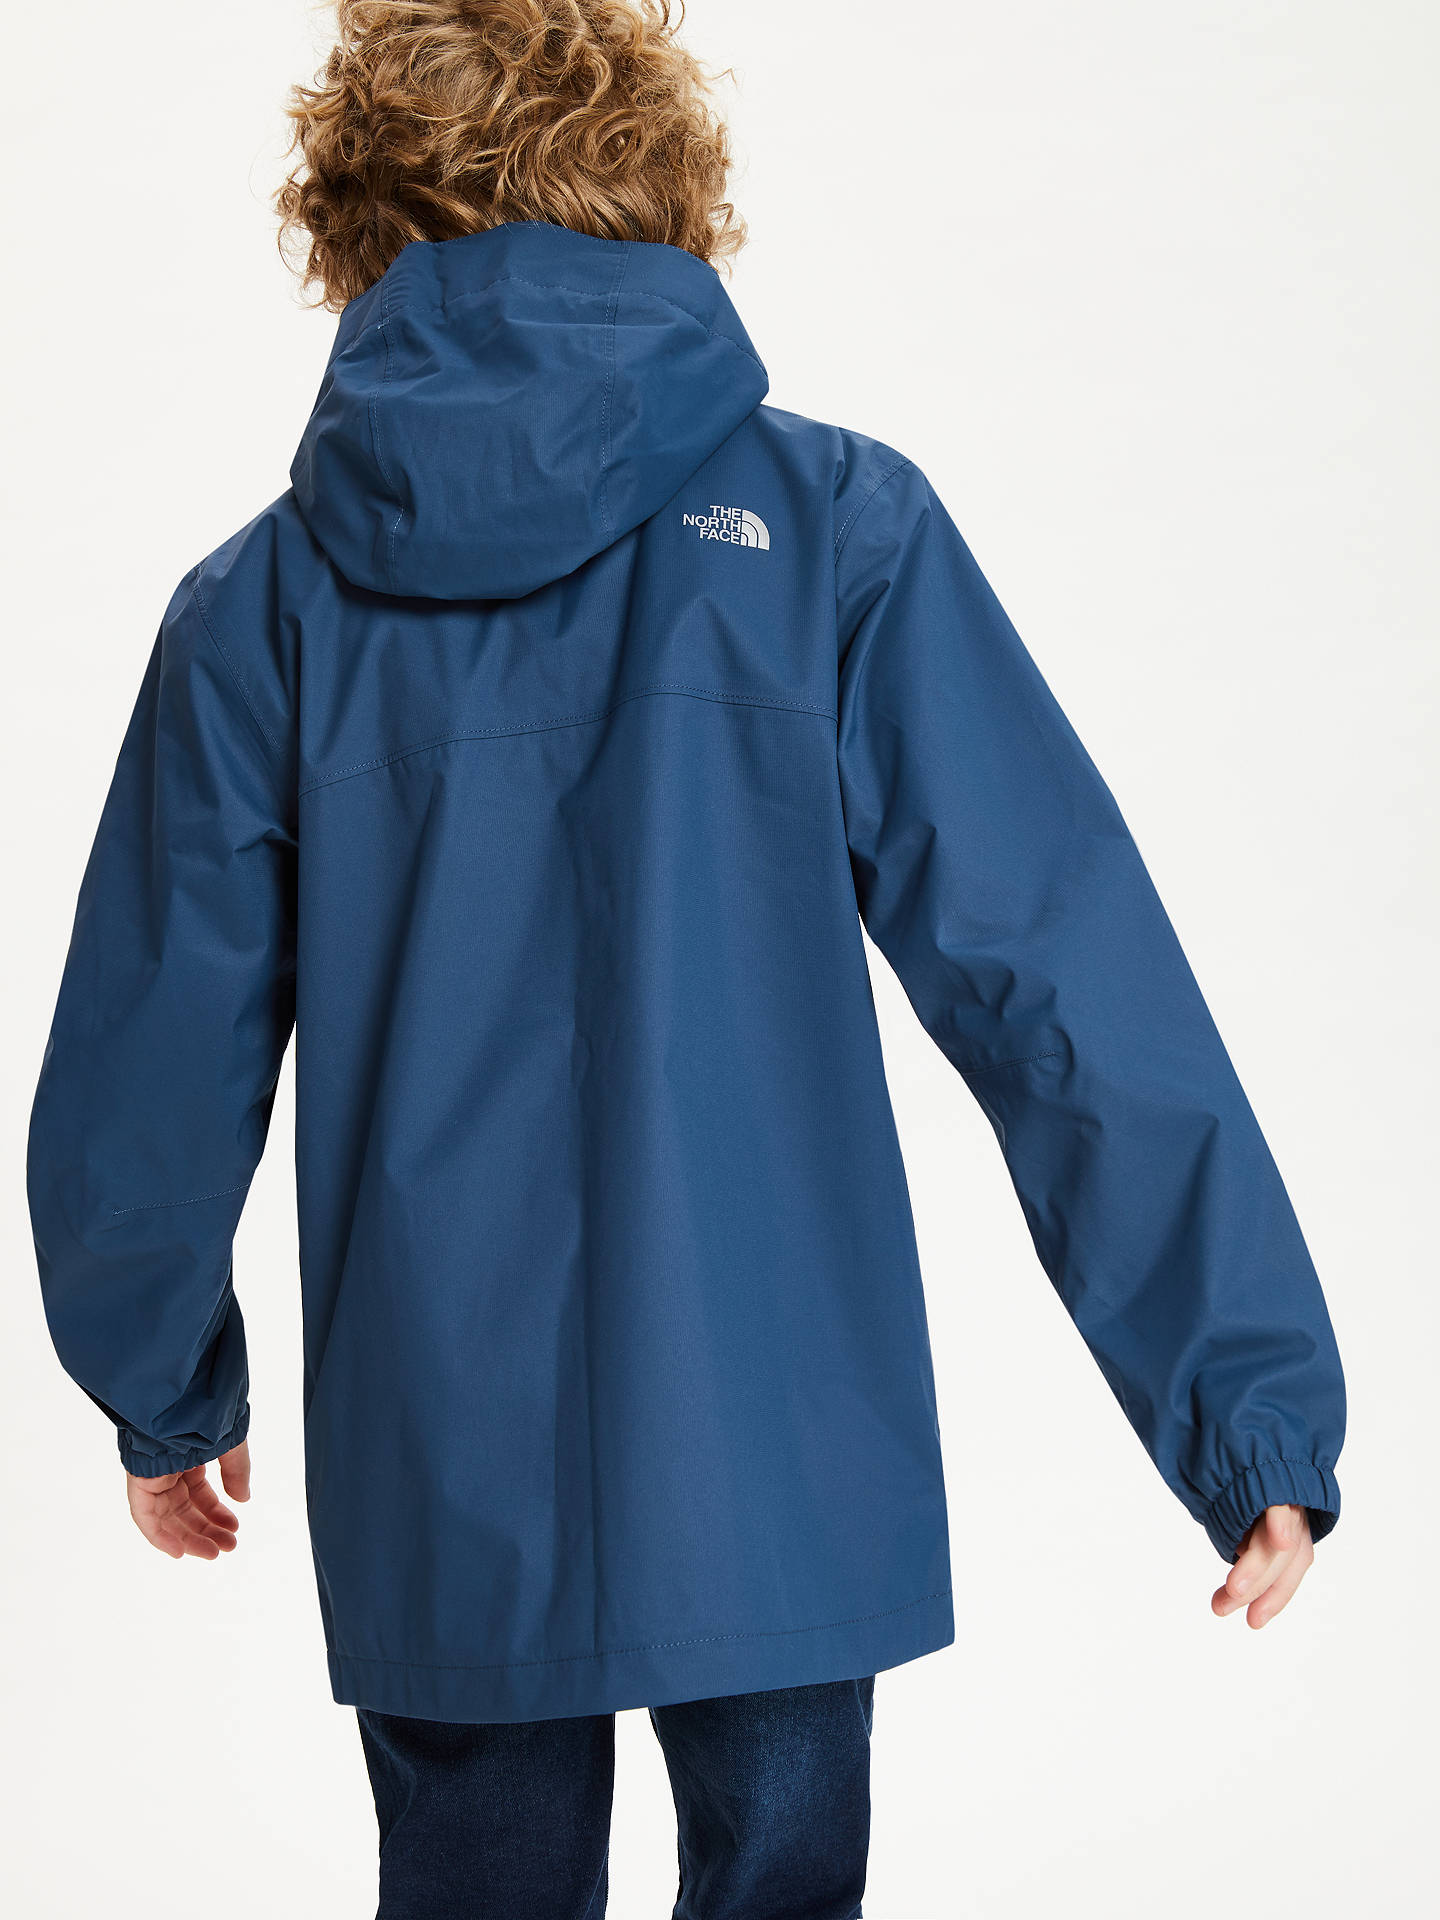 d0ddd40944 Buy The North Face Boys' Reflective Jacket, Blue, L Online at johnlewis.